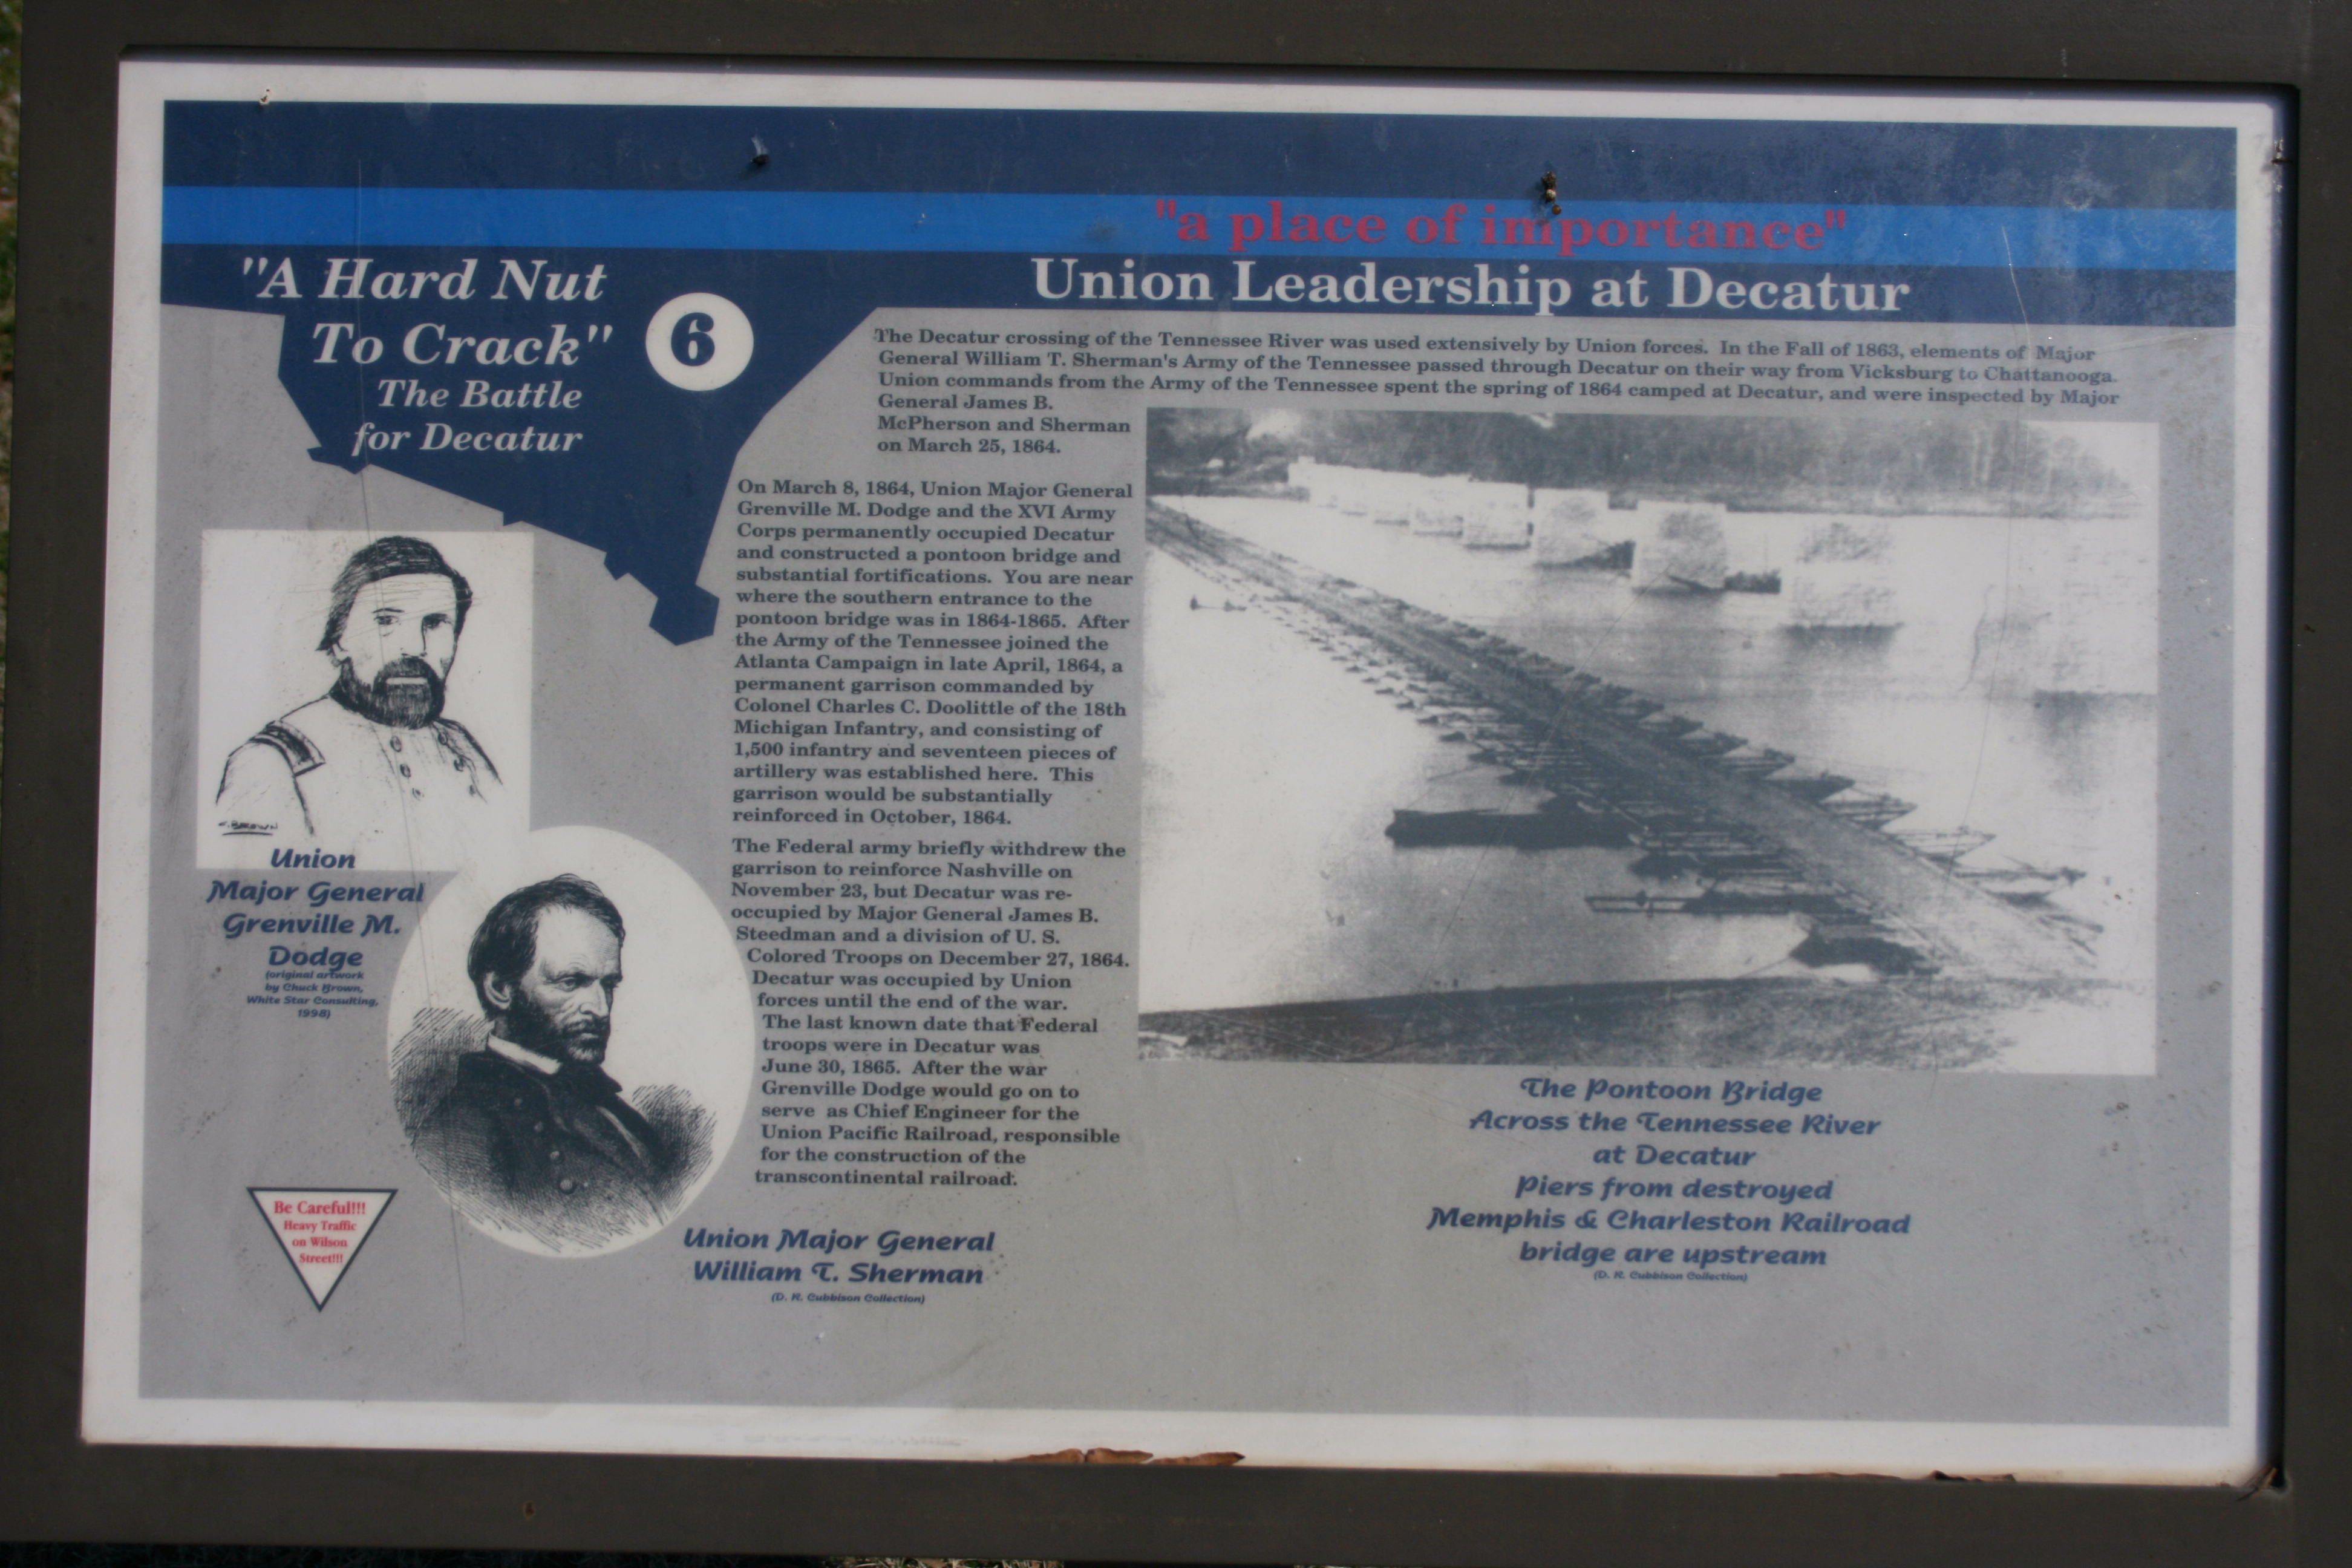 """a place of importance"" - Union Leadership at Decatur Marker"